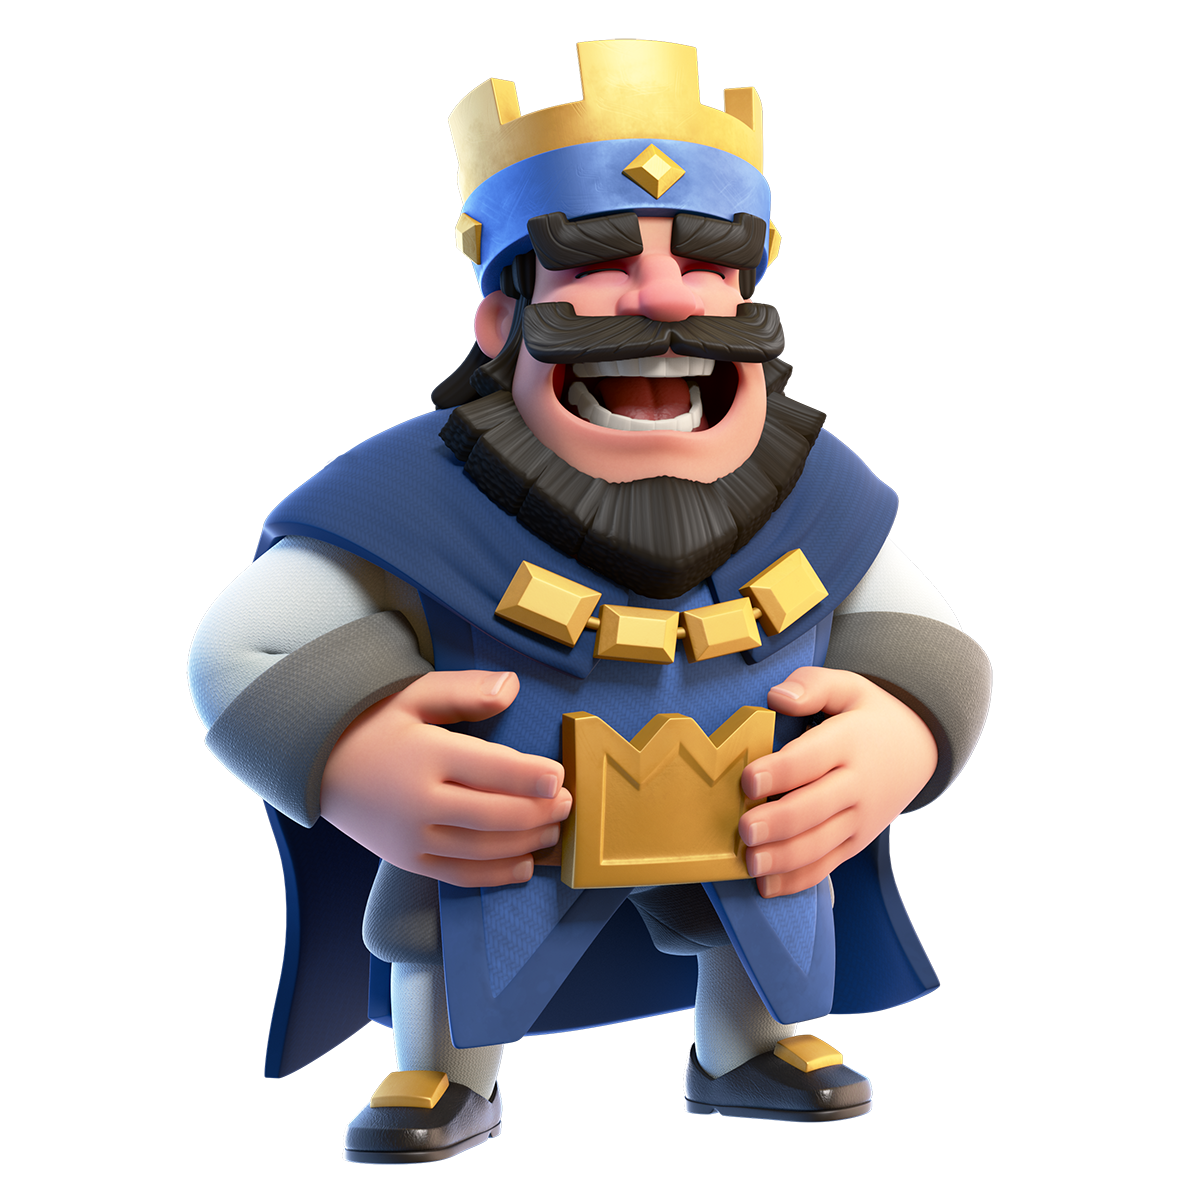 ... Clash Royale HD wallpapers and Pictures for PC and Mobile - Clash